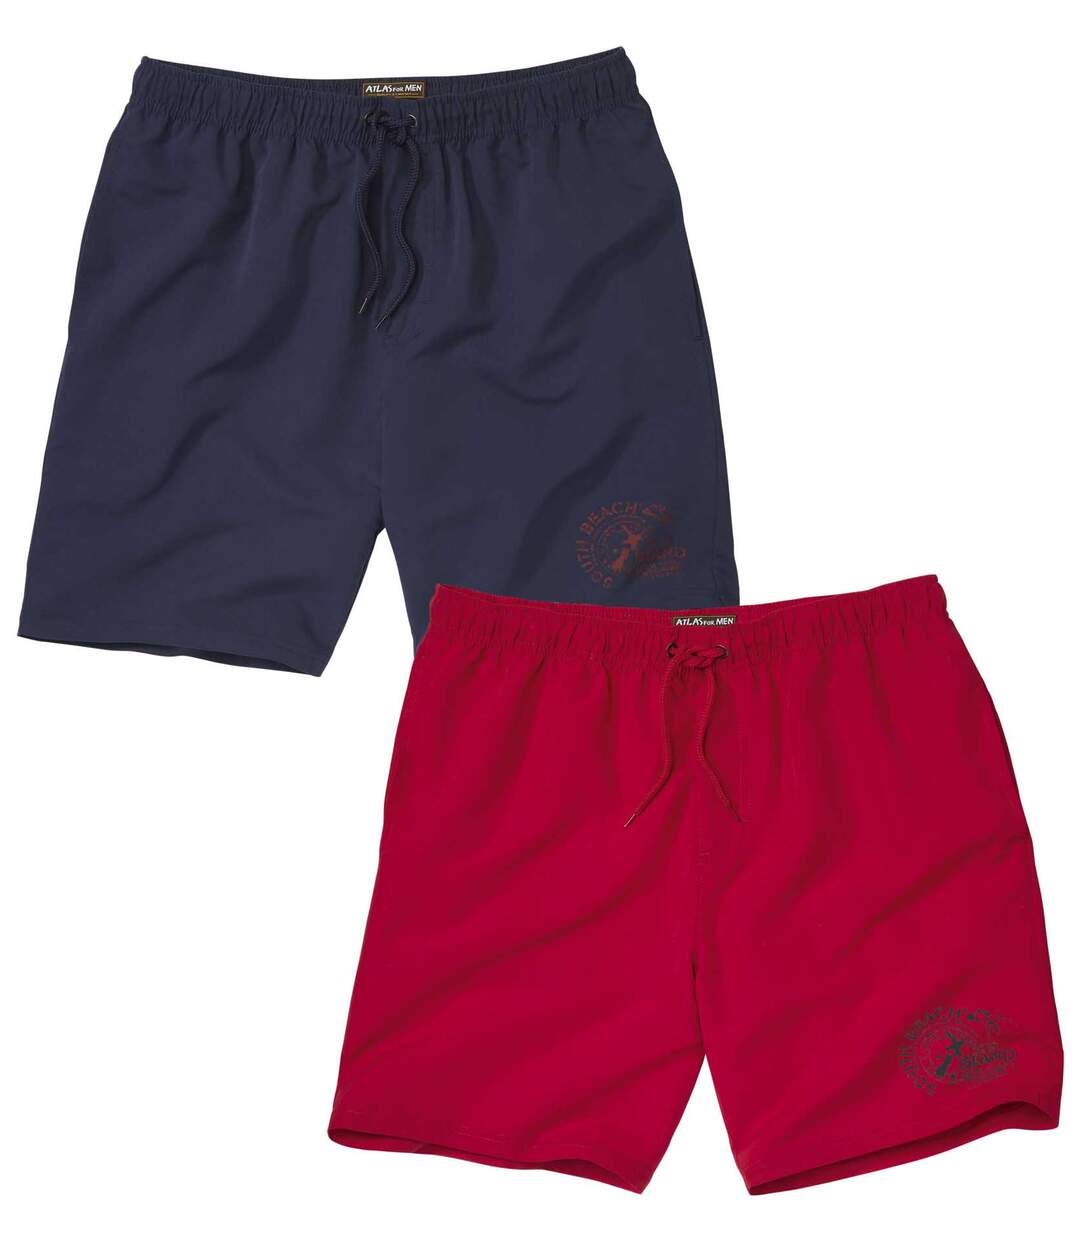 Pack of 2 Men's Microfibre Sports Shorts - Red Navy